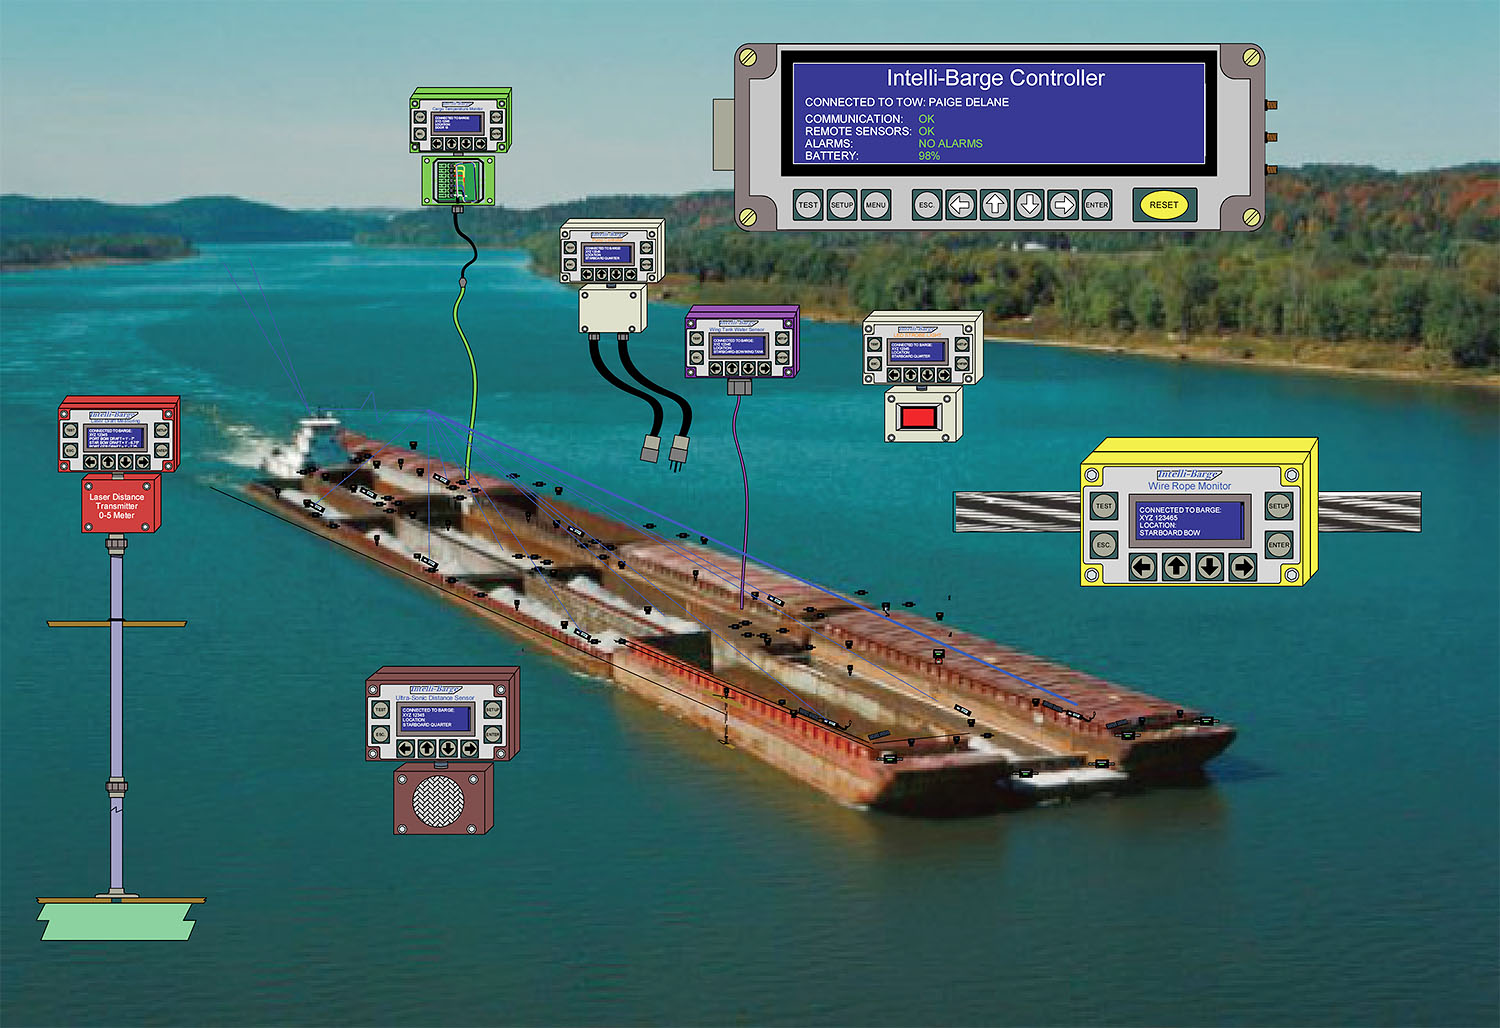 Sensor System Brings Tech To Barge Safety